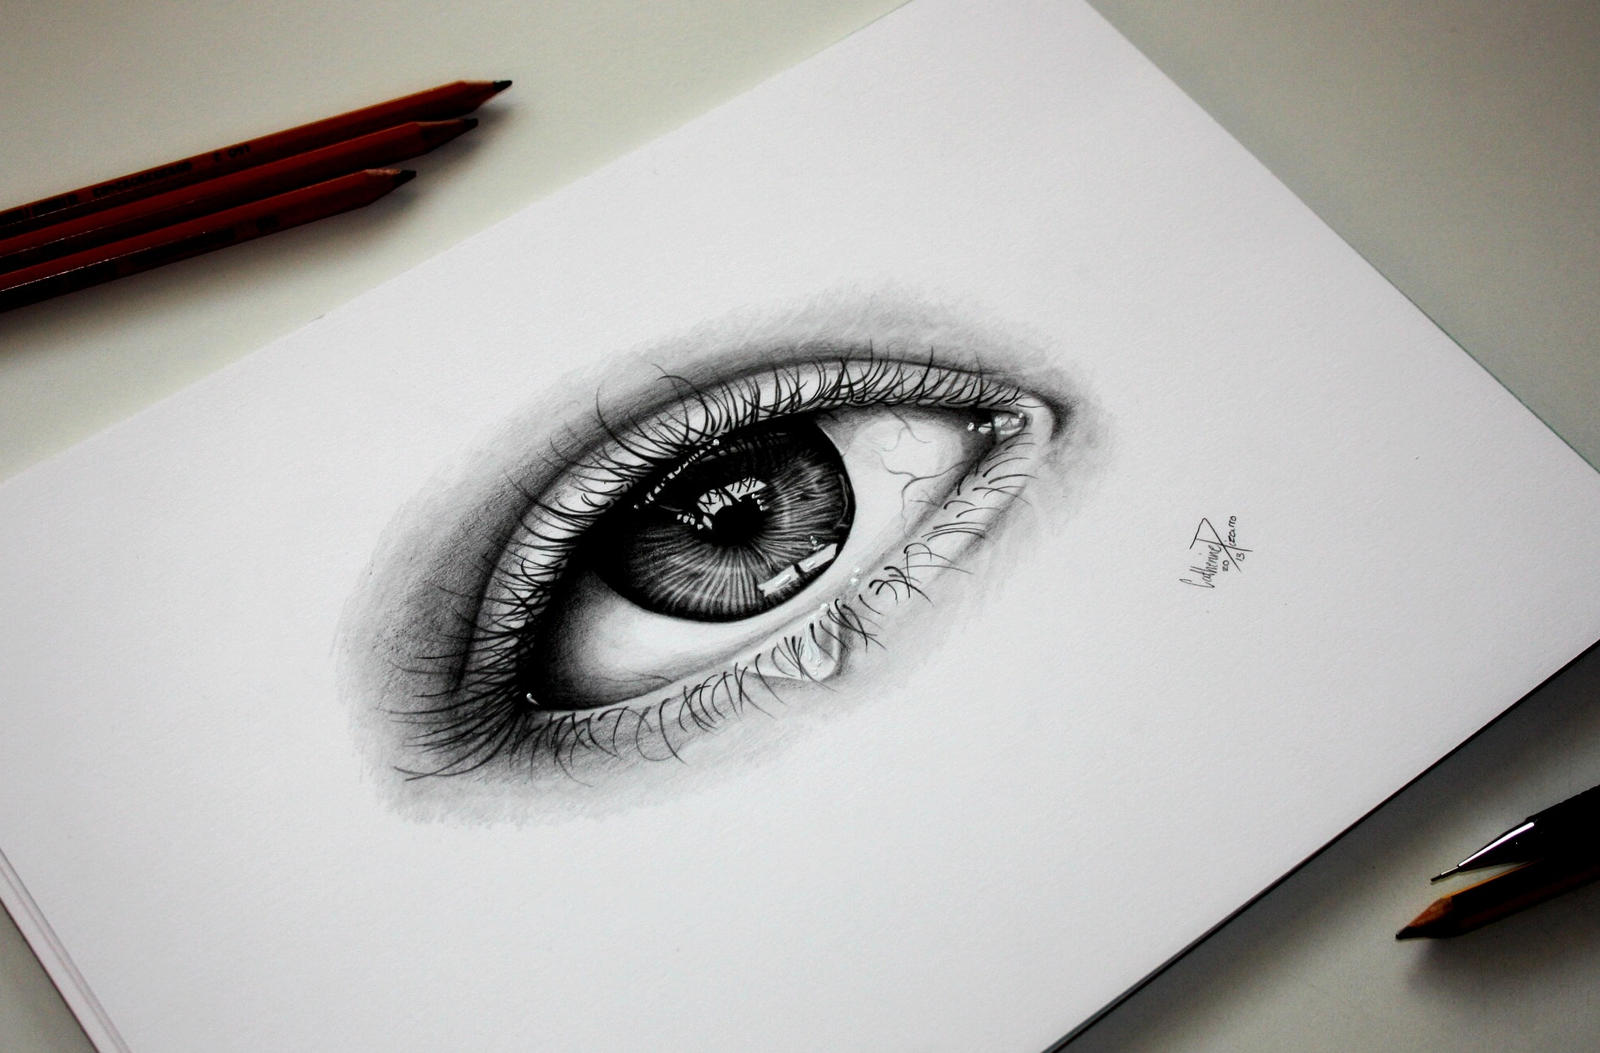 Easy Pencil Drawing For Beginners furthermore Jack Frost likewise Bewitching And Beautiful Black Ink Drawings To Bedazzle You additionally Cloud Tattoos further Wolf Fantasy Drawing 565619191. on realistic drawings of an eye